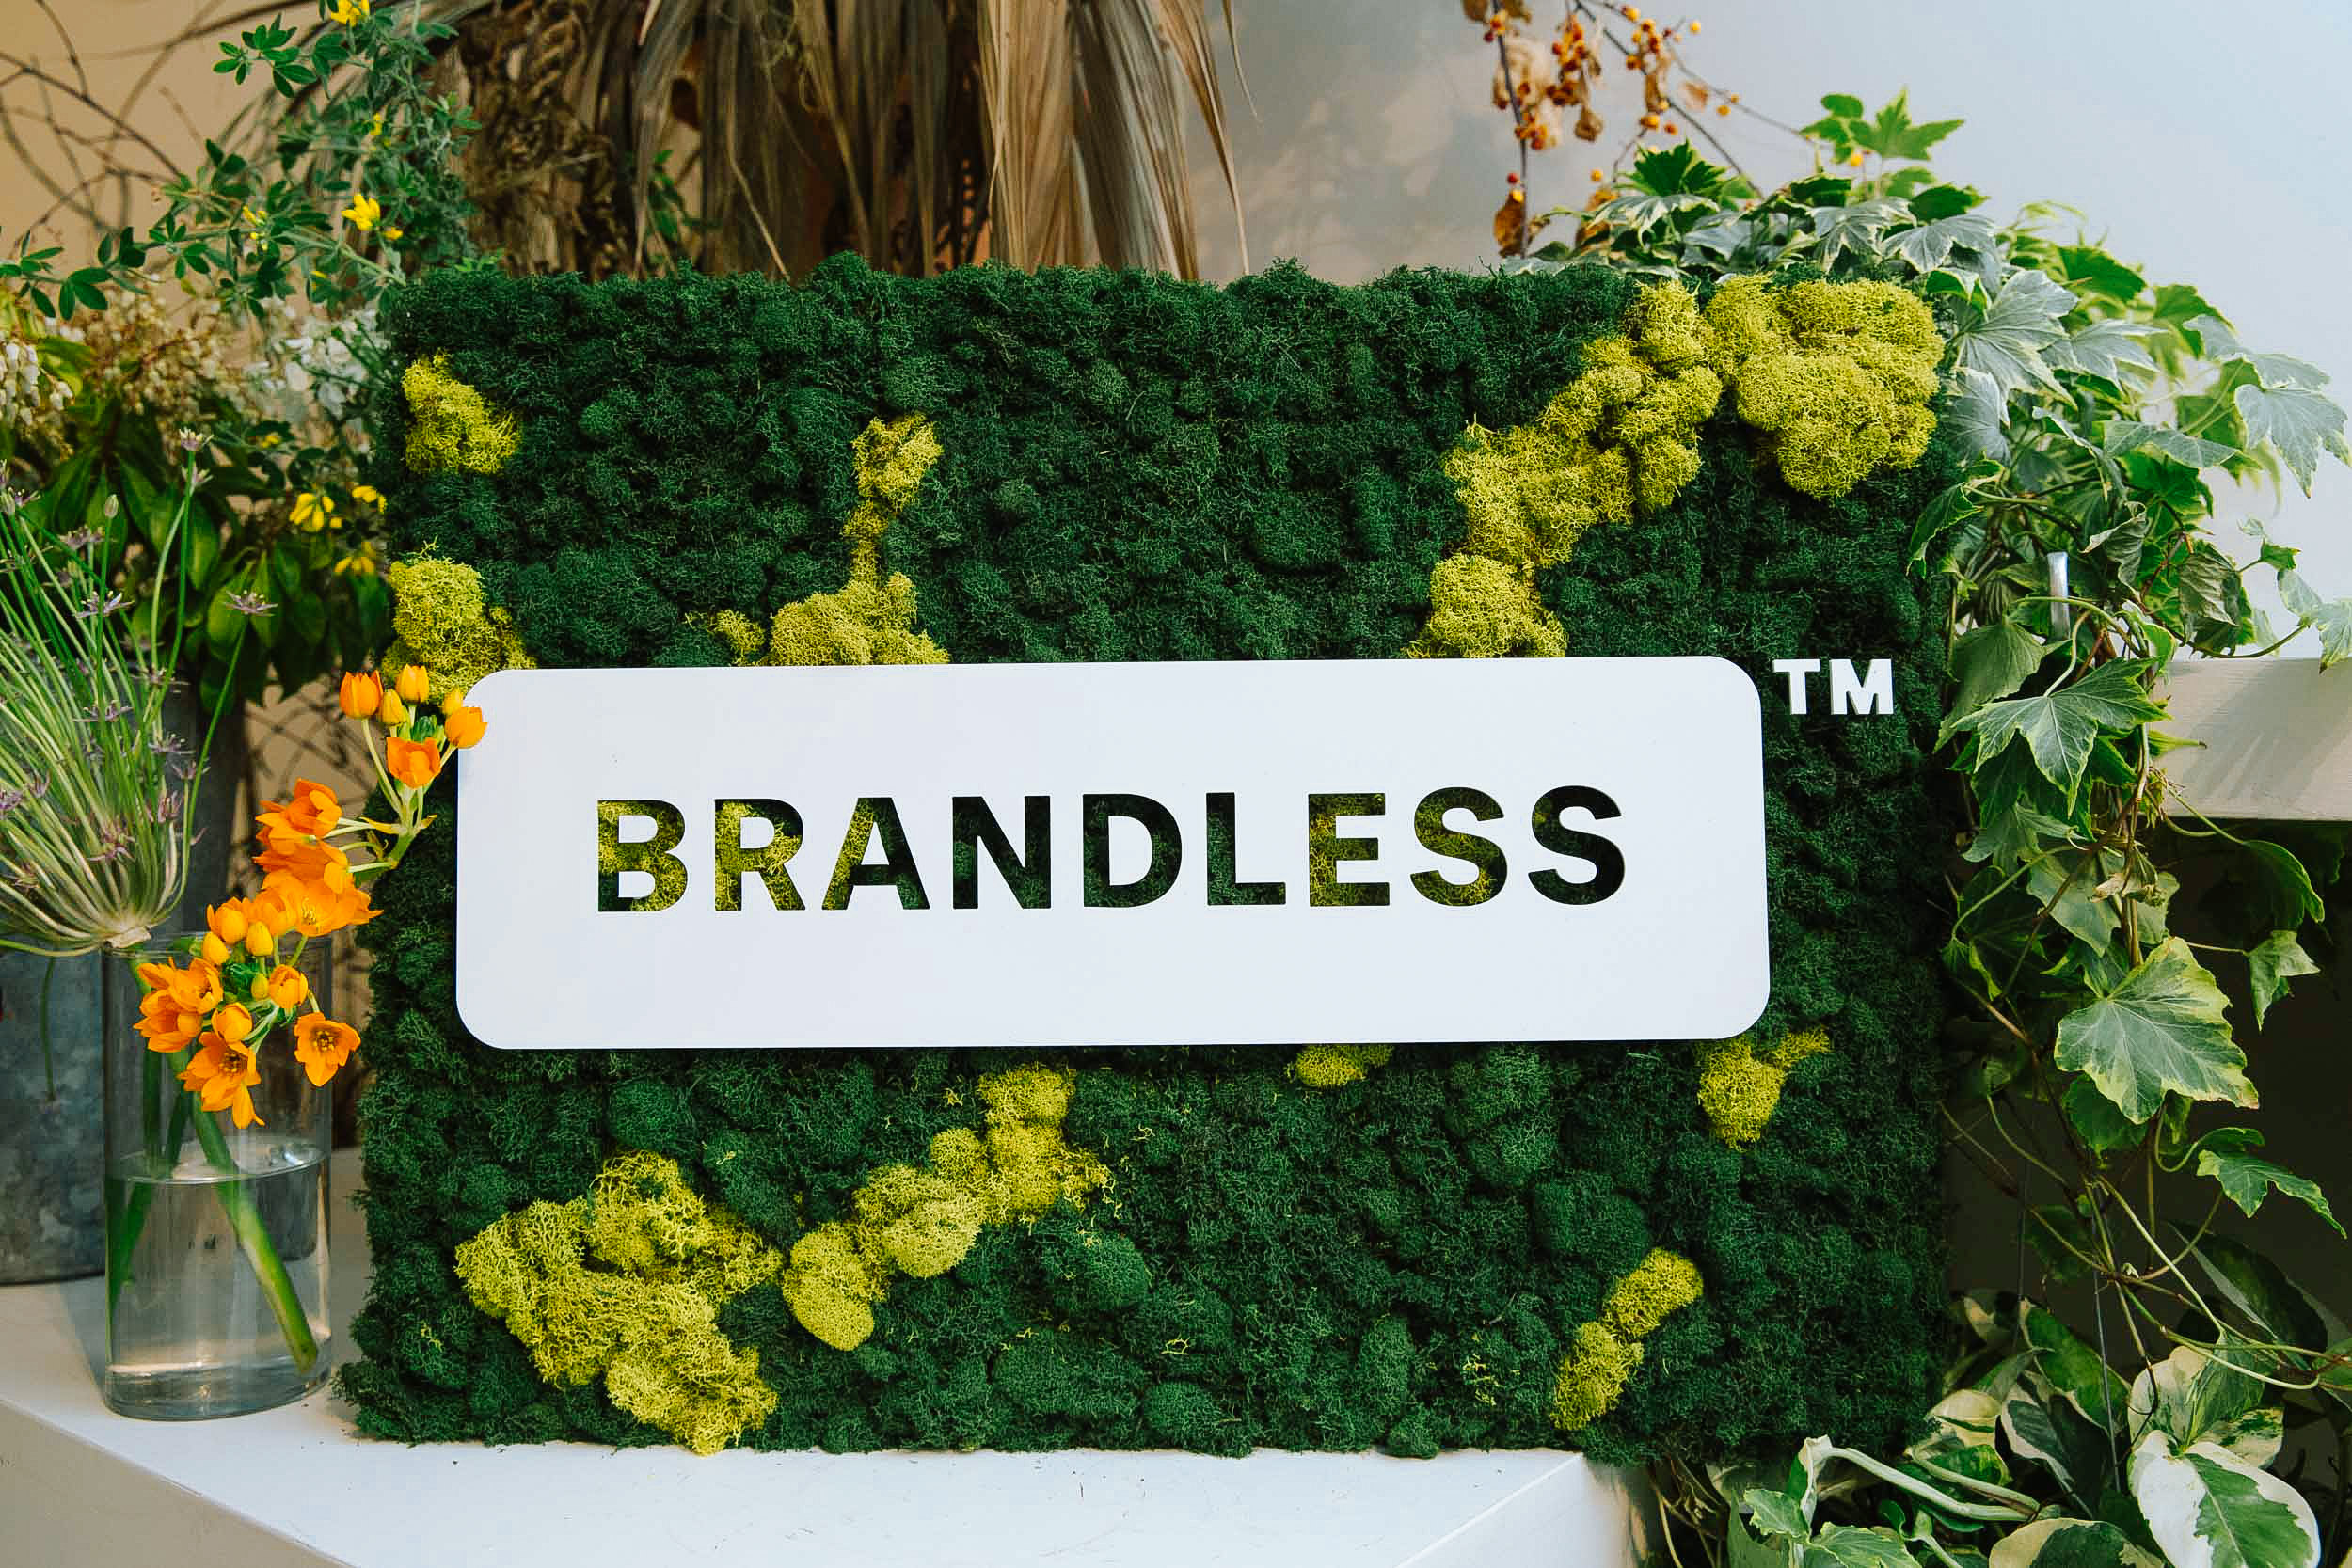 Hidden Rhythm Experiential Marketing - Brandless Influencer Dinner